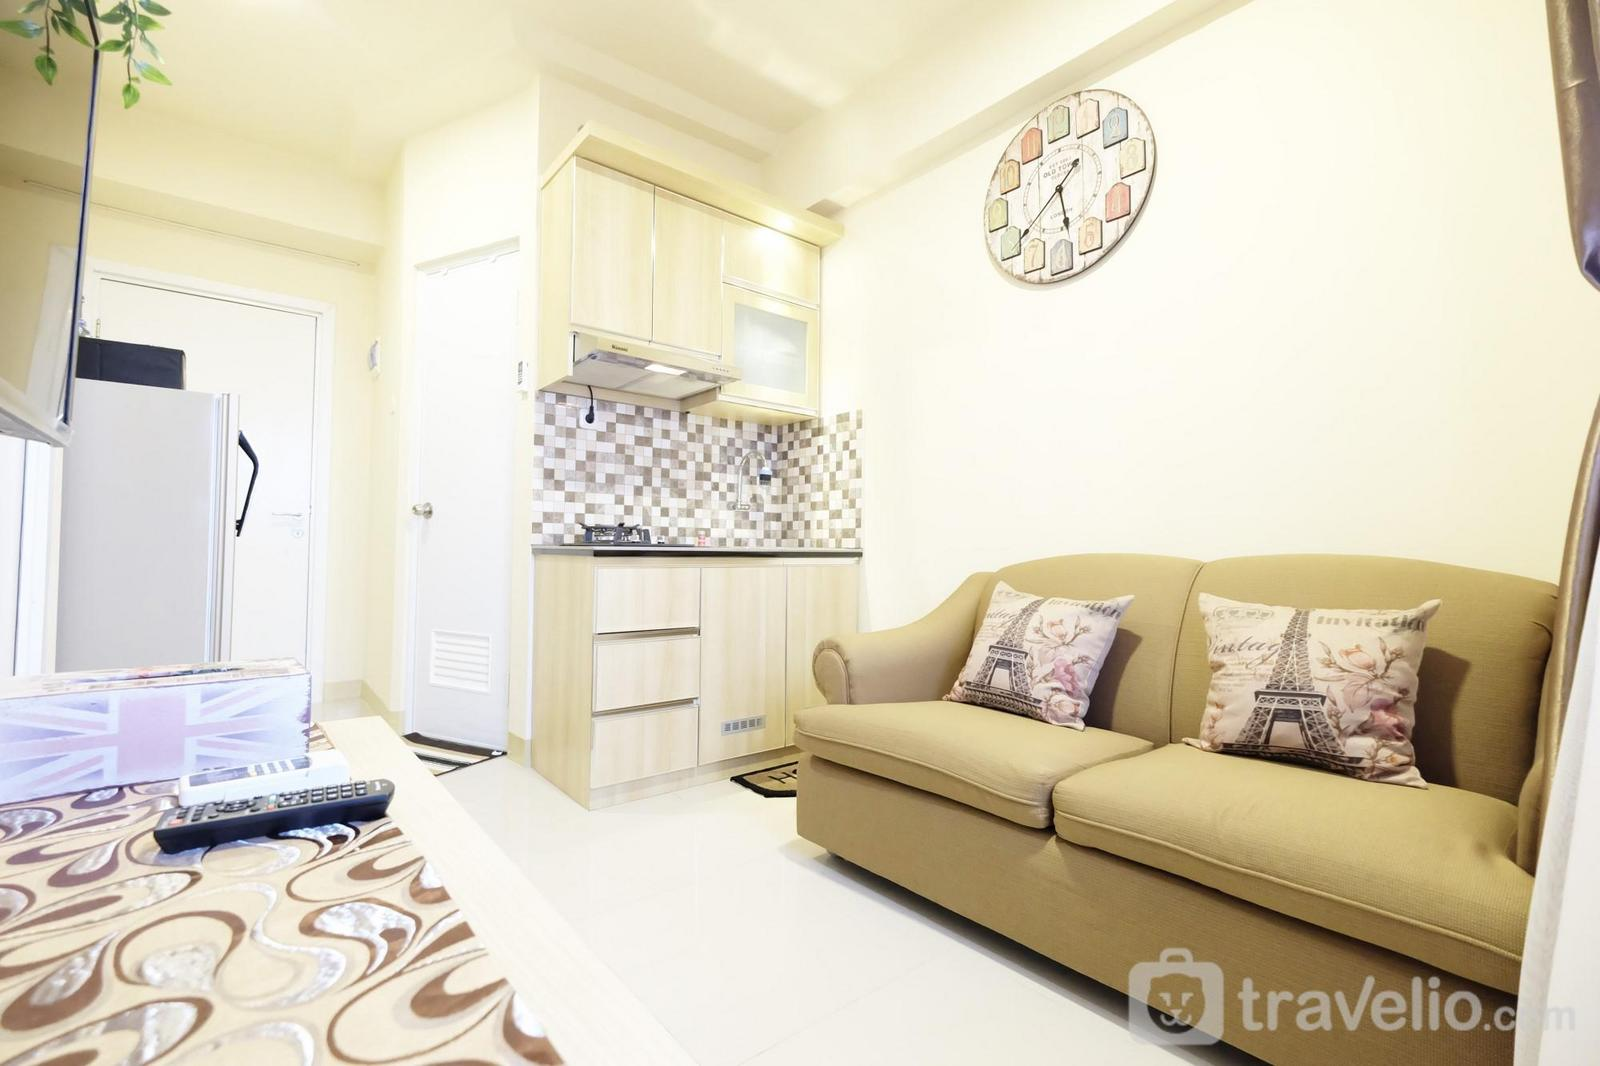 Green Pramuka Cempaka Putih - Cozy 2BR Green Pramuka Apartement Direct Access to GPS Mall by Travelio